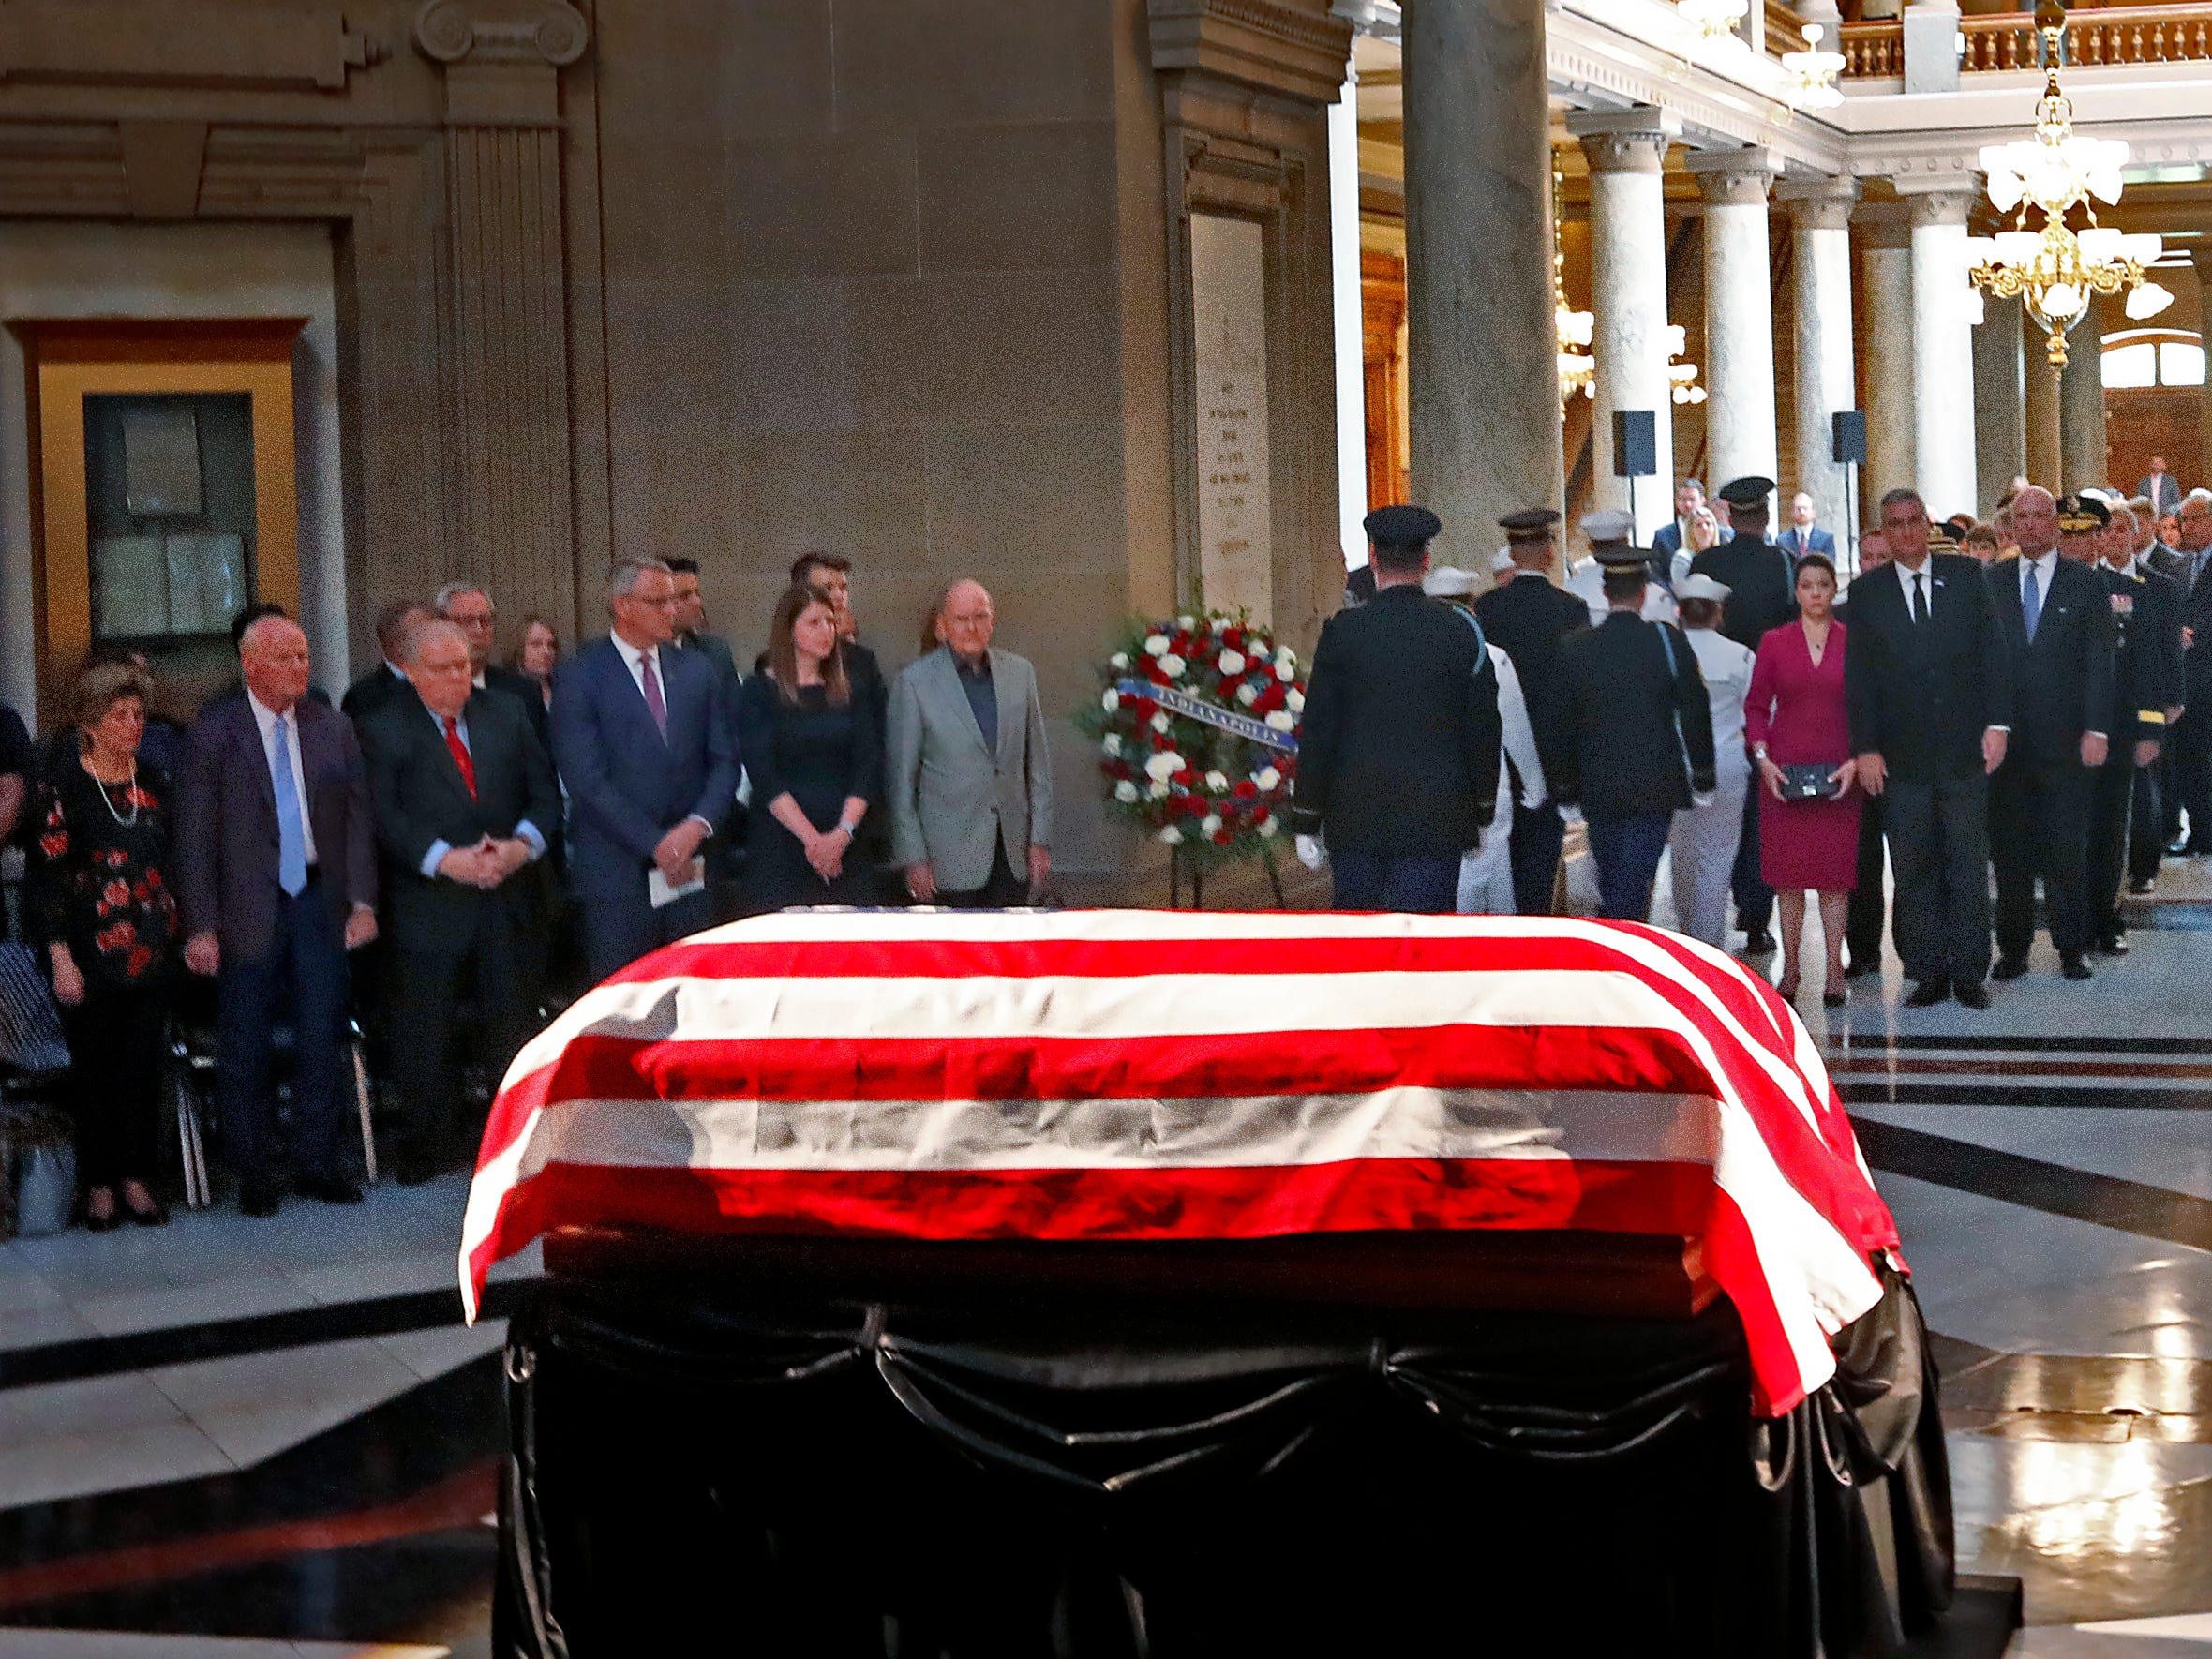 Former Senator and Mayor Richard Lugar lies in state under the Statehouse rotunda, Tuesday, May 14, 2019.  Dignitaries and family come in for a brief ceremony before the public paid their respects.